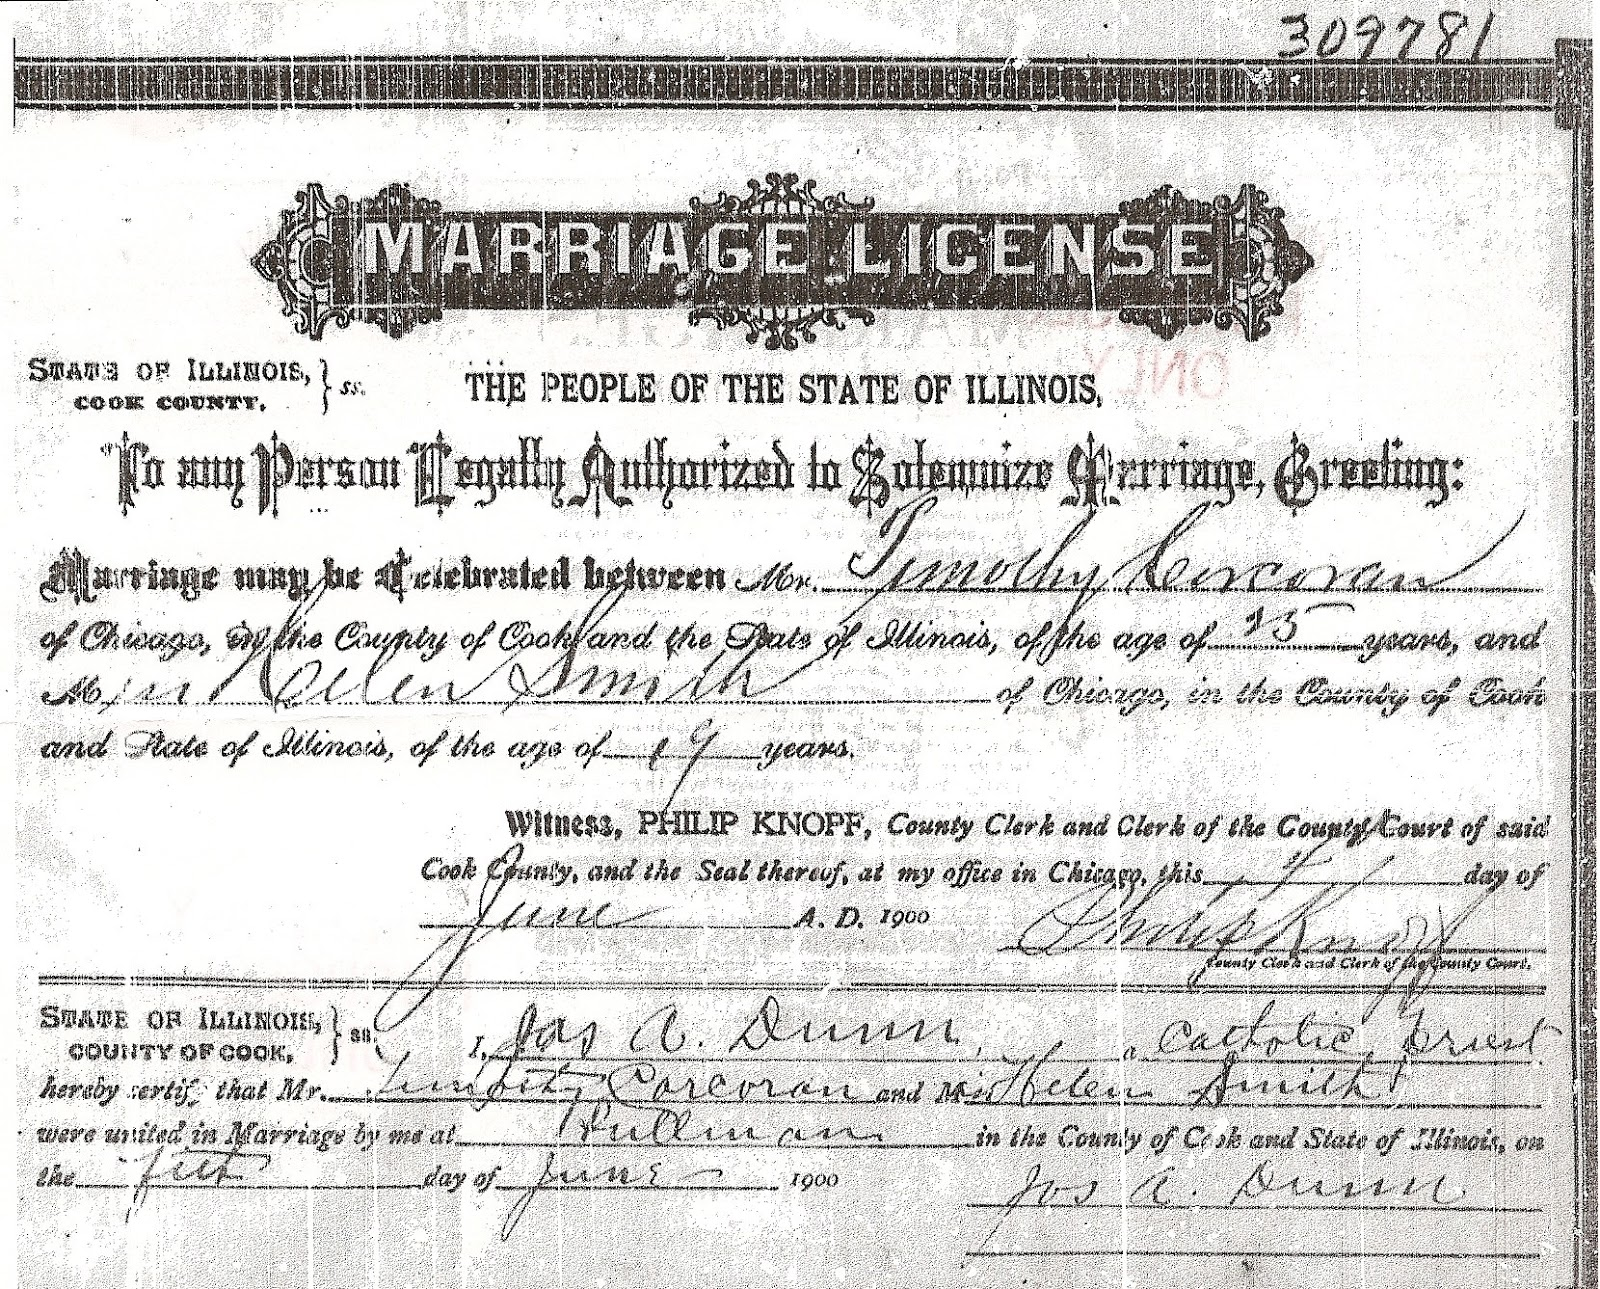 marriage smith license timothy francis illinois county cook corcoran chicago helen 1900 june